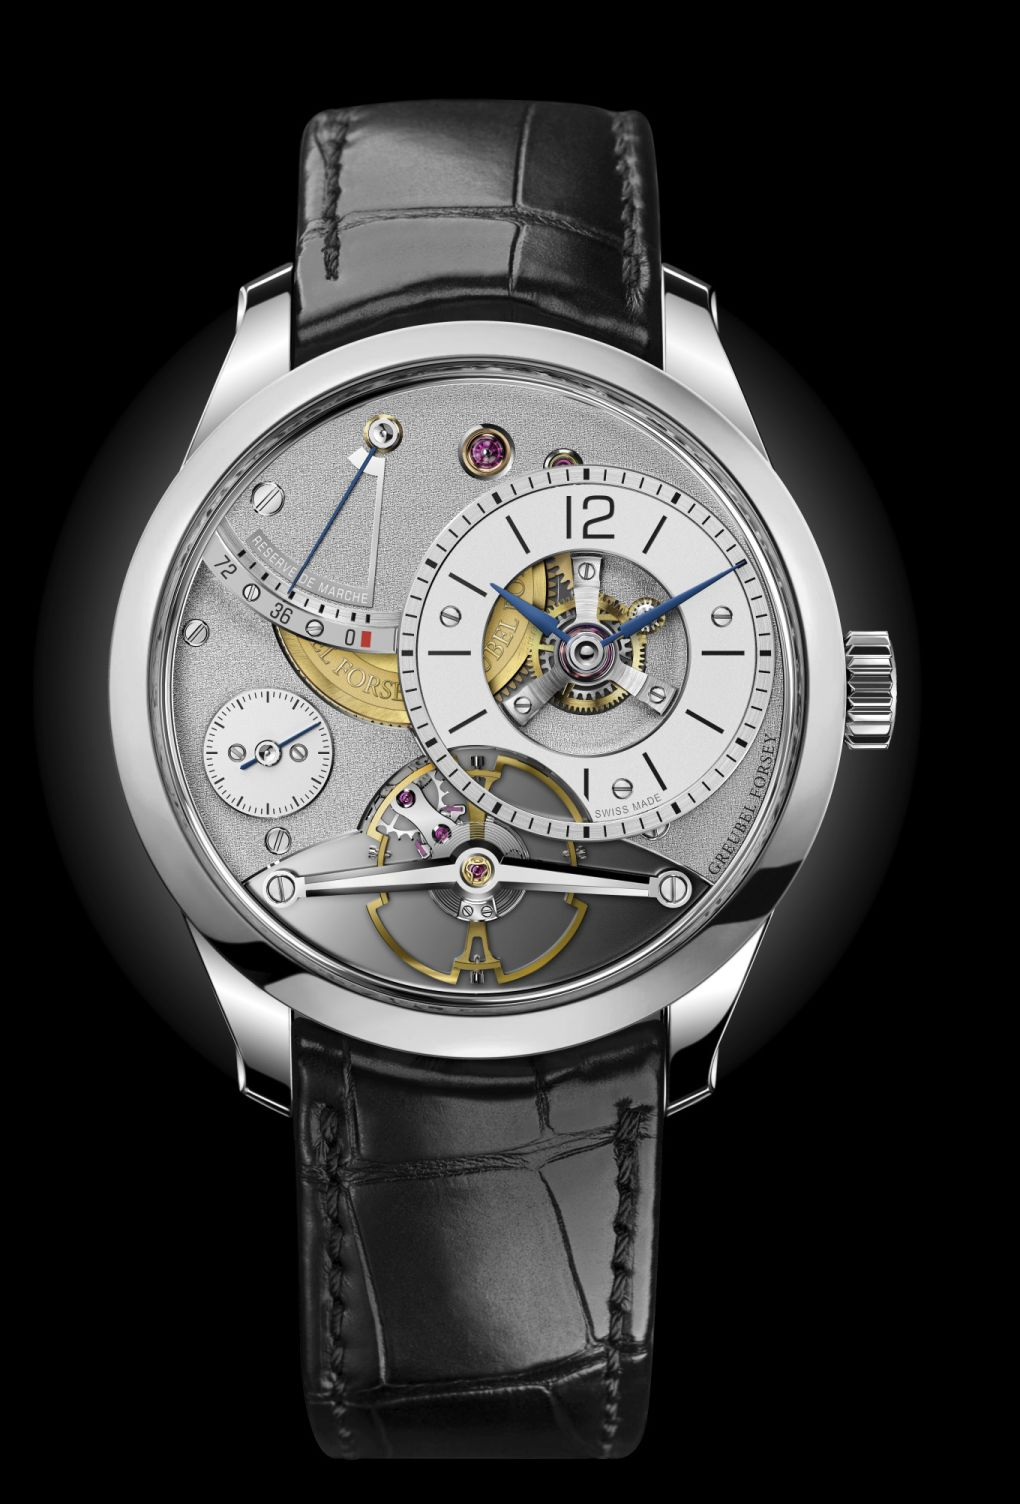 Greubel Forsey Balancier Contemporain, Greubel Forsey Balancier, Balancier Contemporain></center>